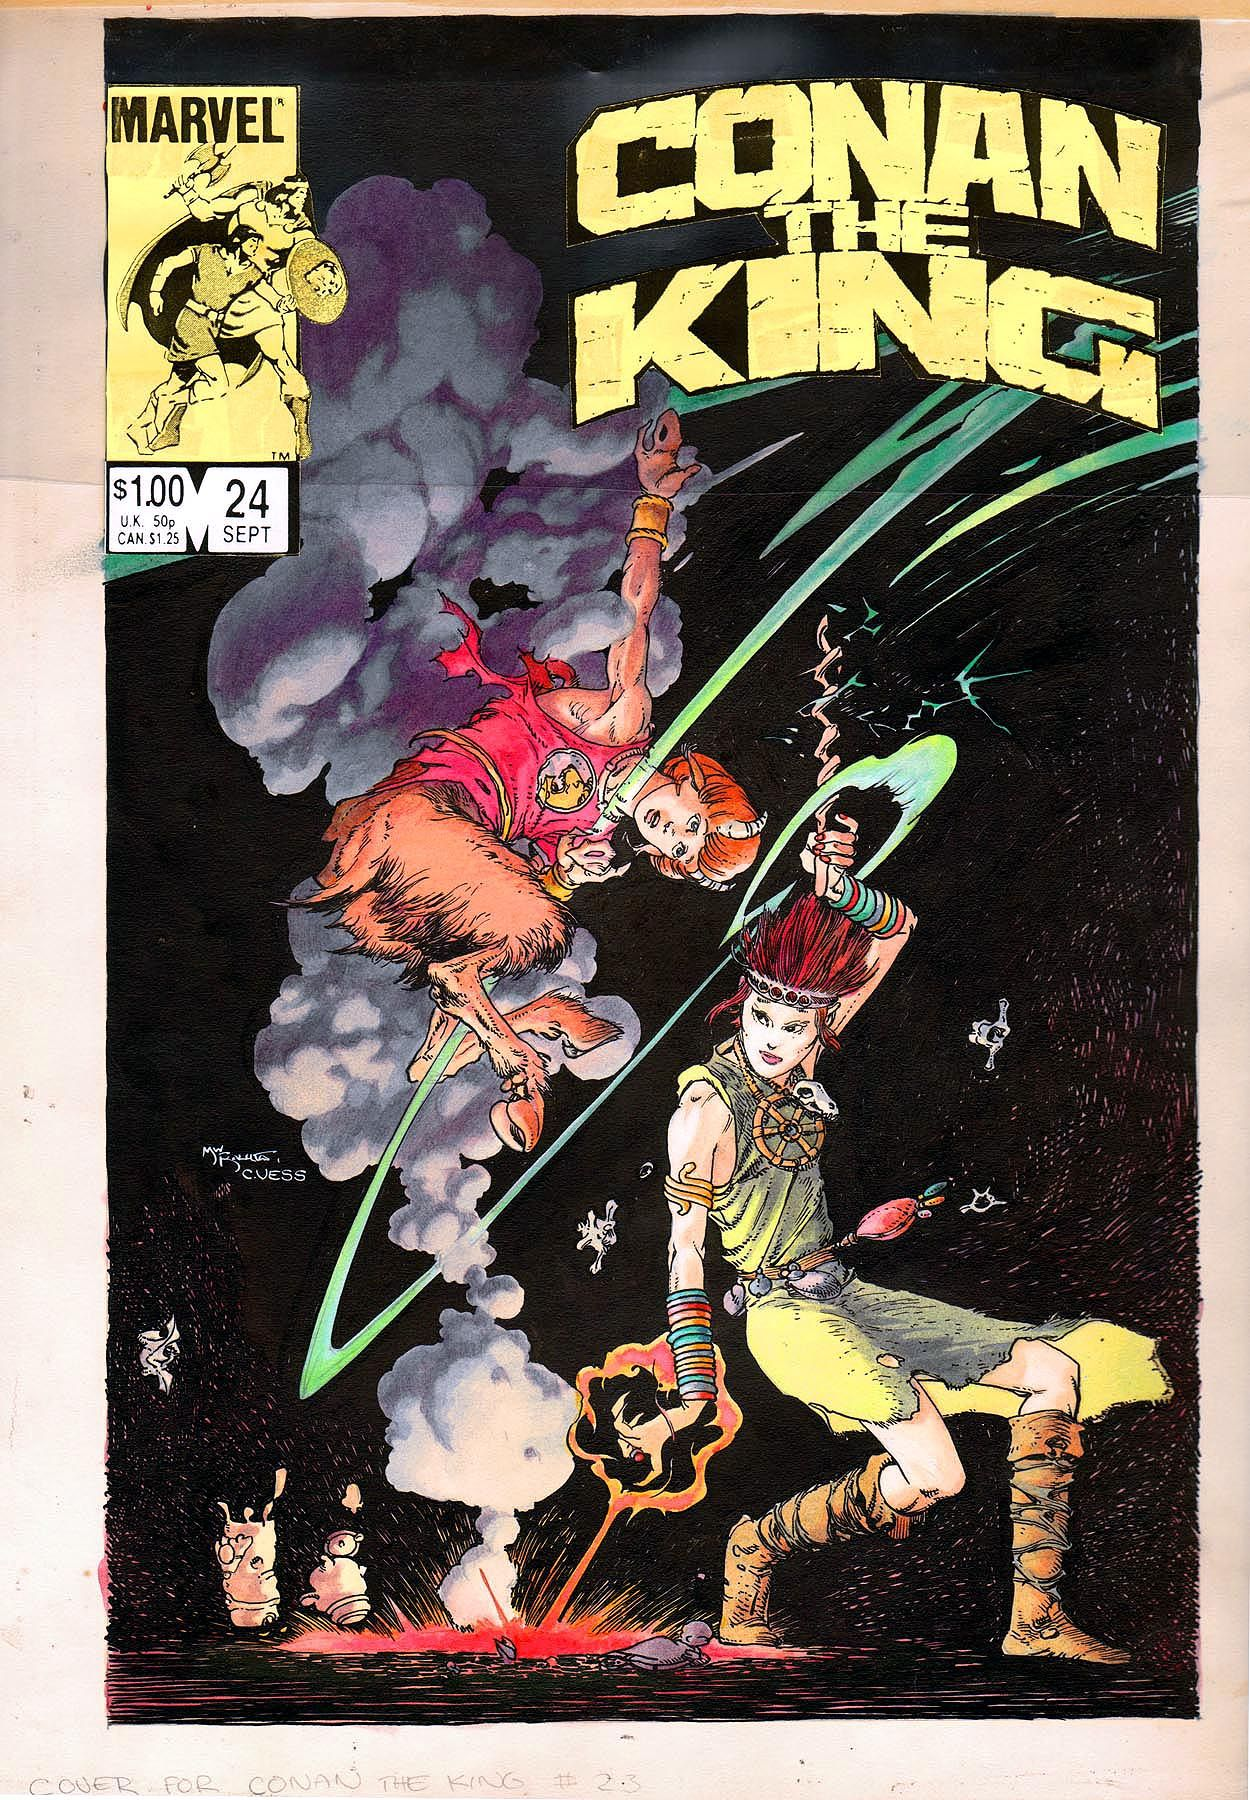 Original painted cover by Michael Kaluta and Charles Vess from